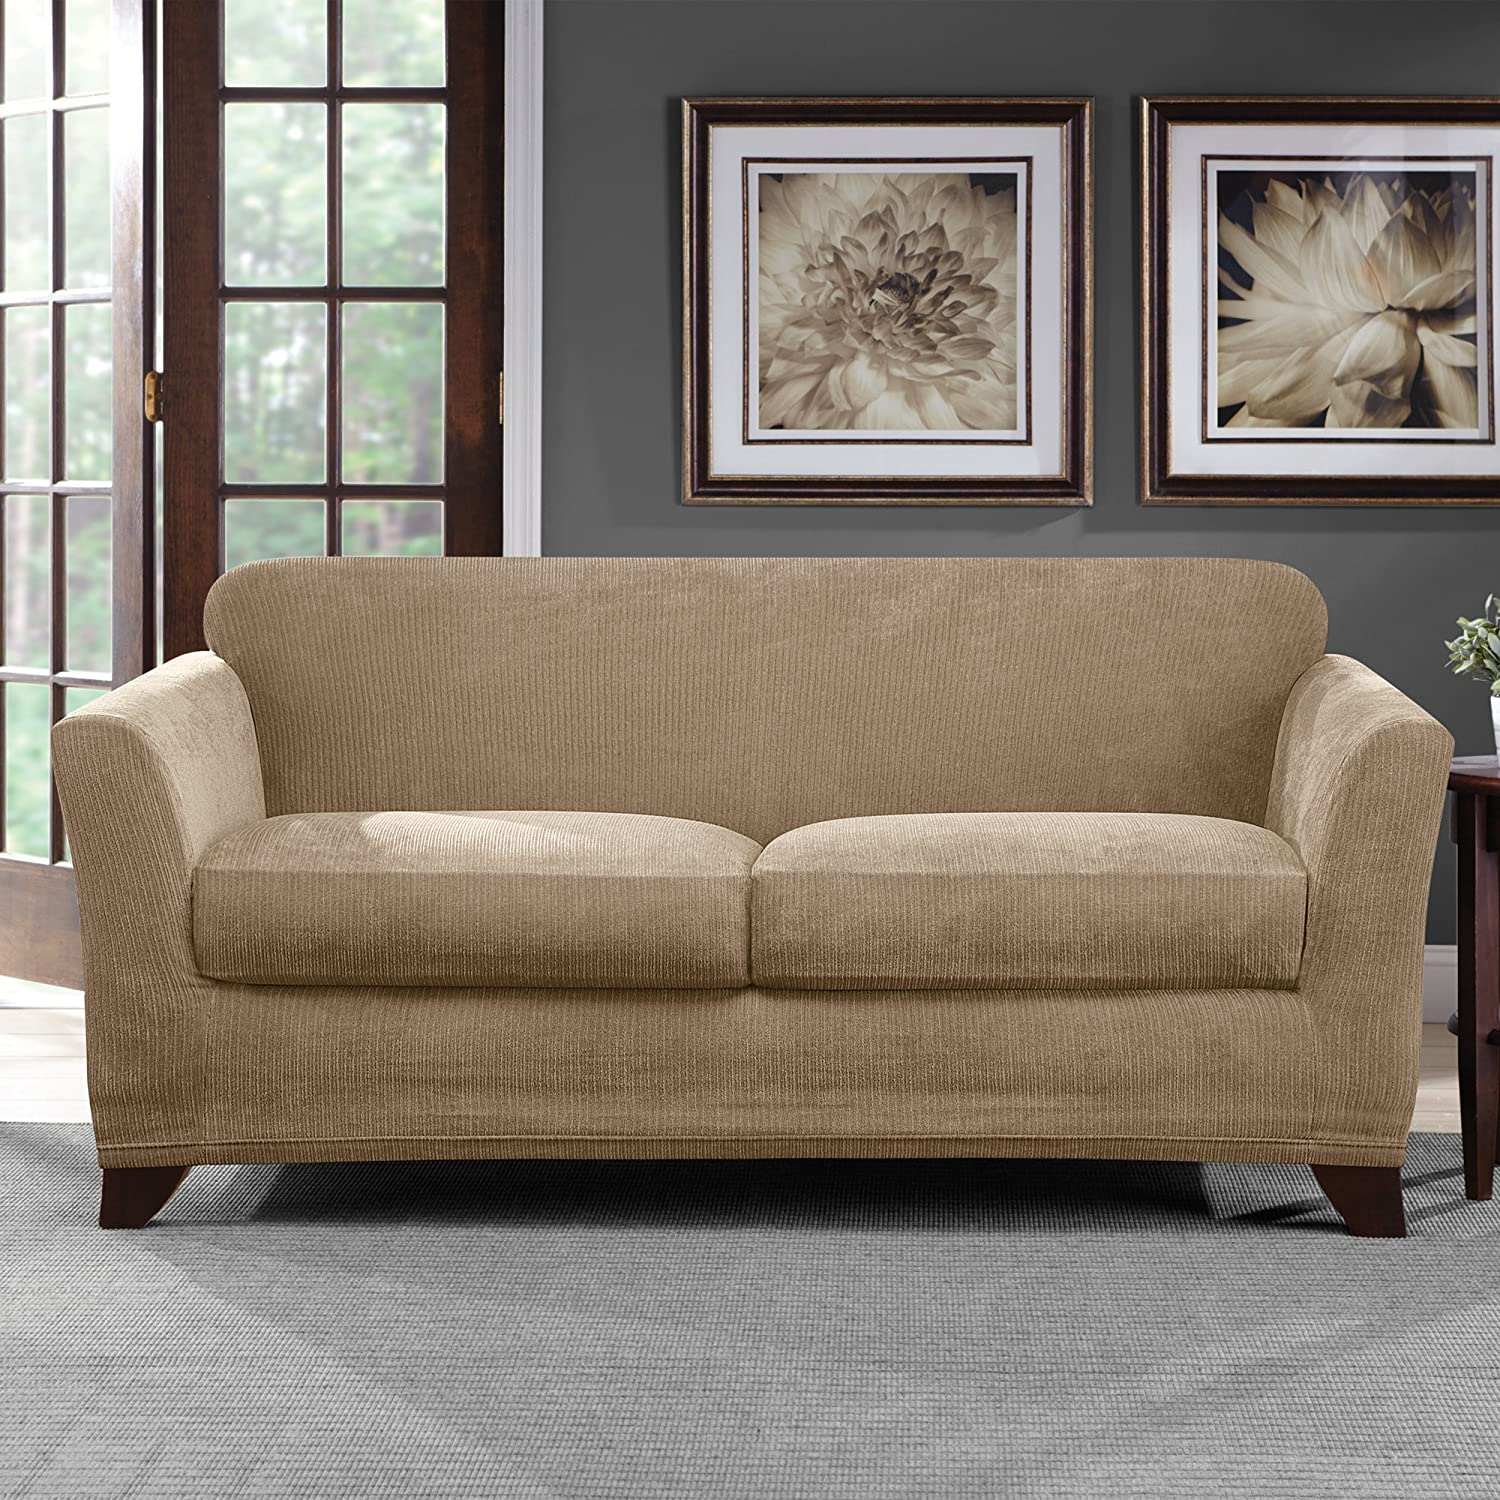 Tan SURE FIT Ultimate Stretch Chenille Loveseat Slipcover